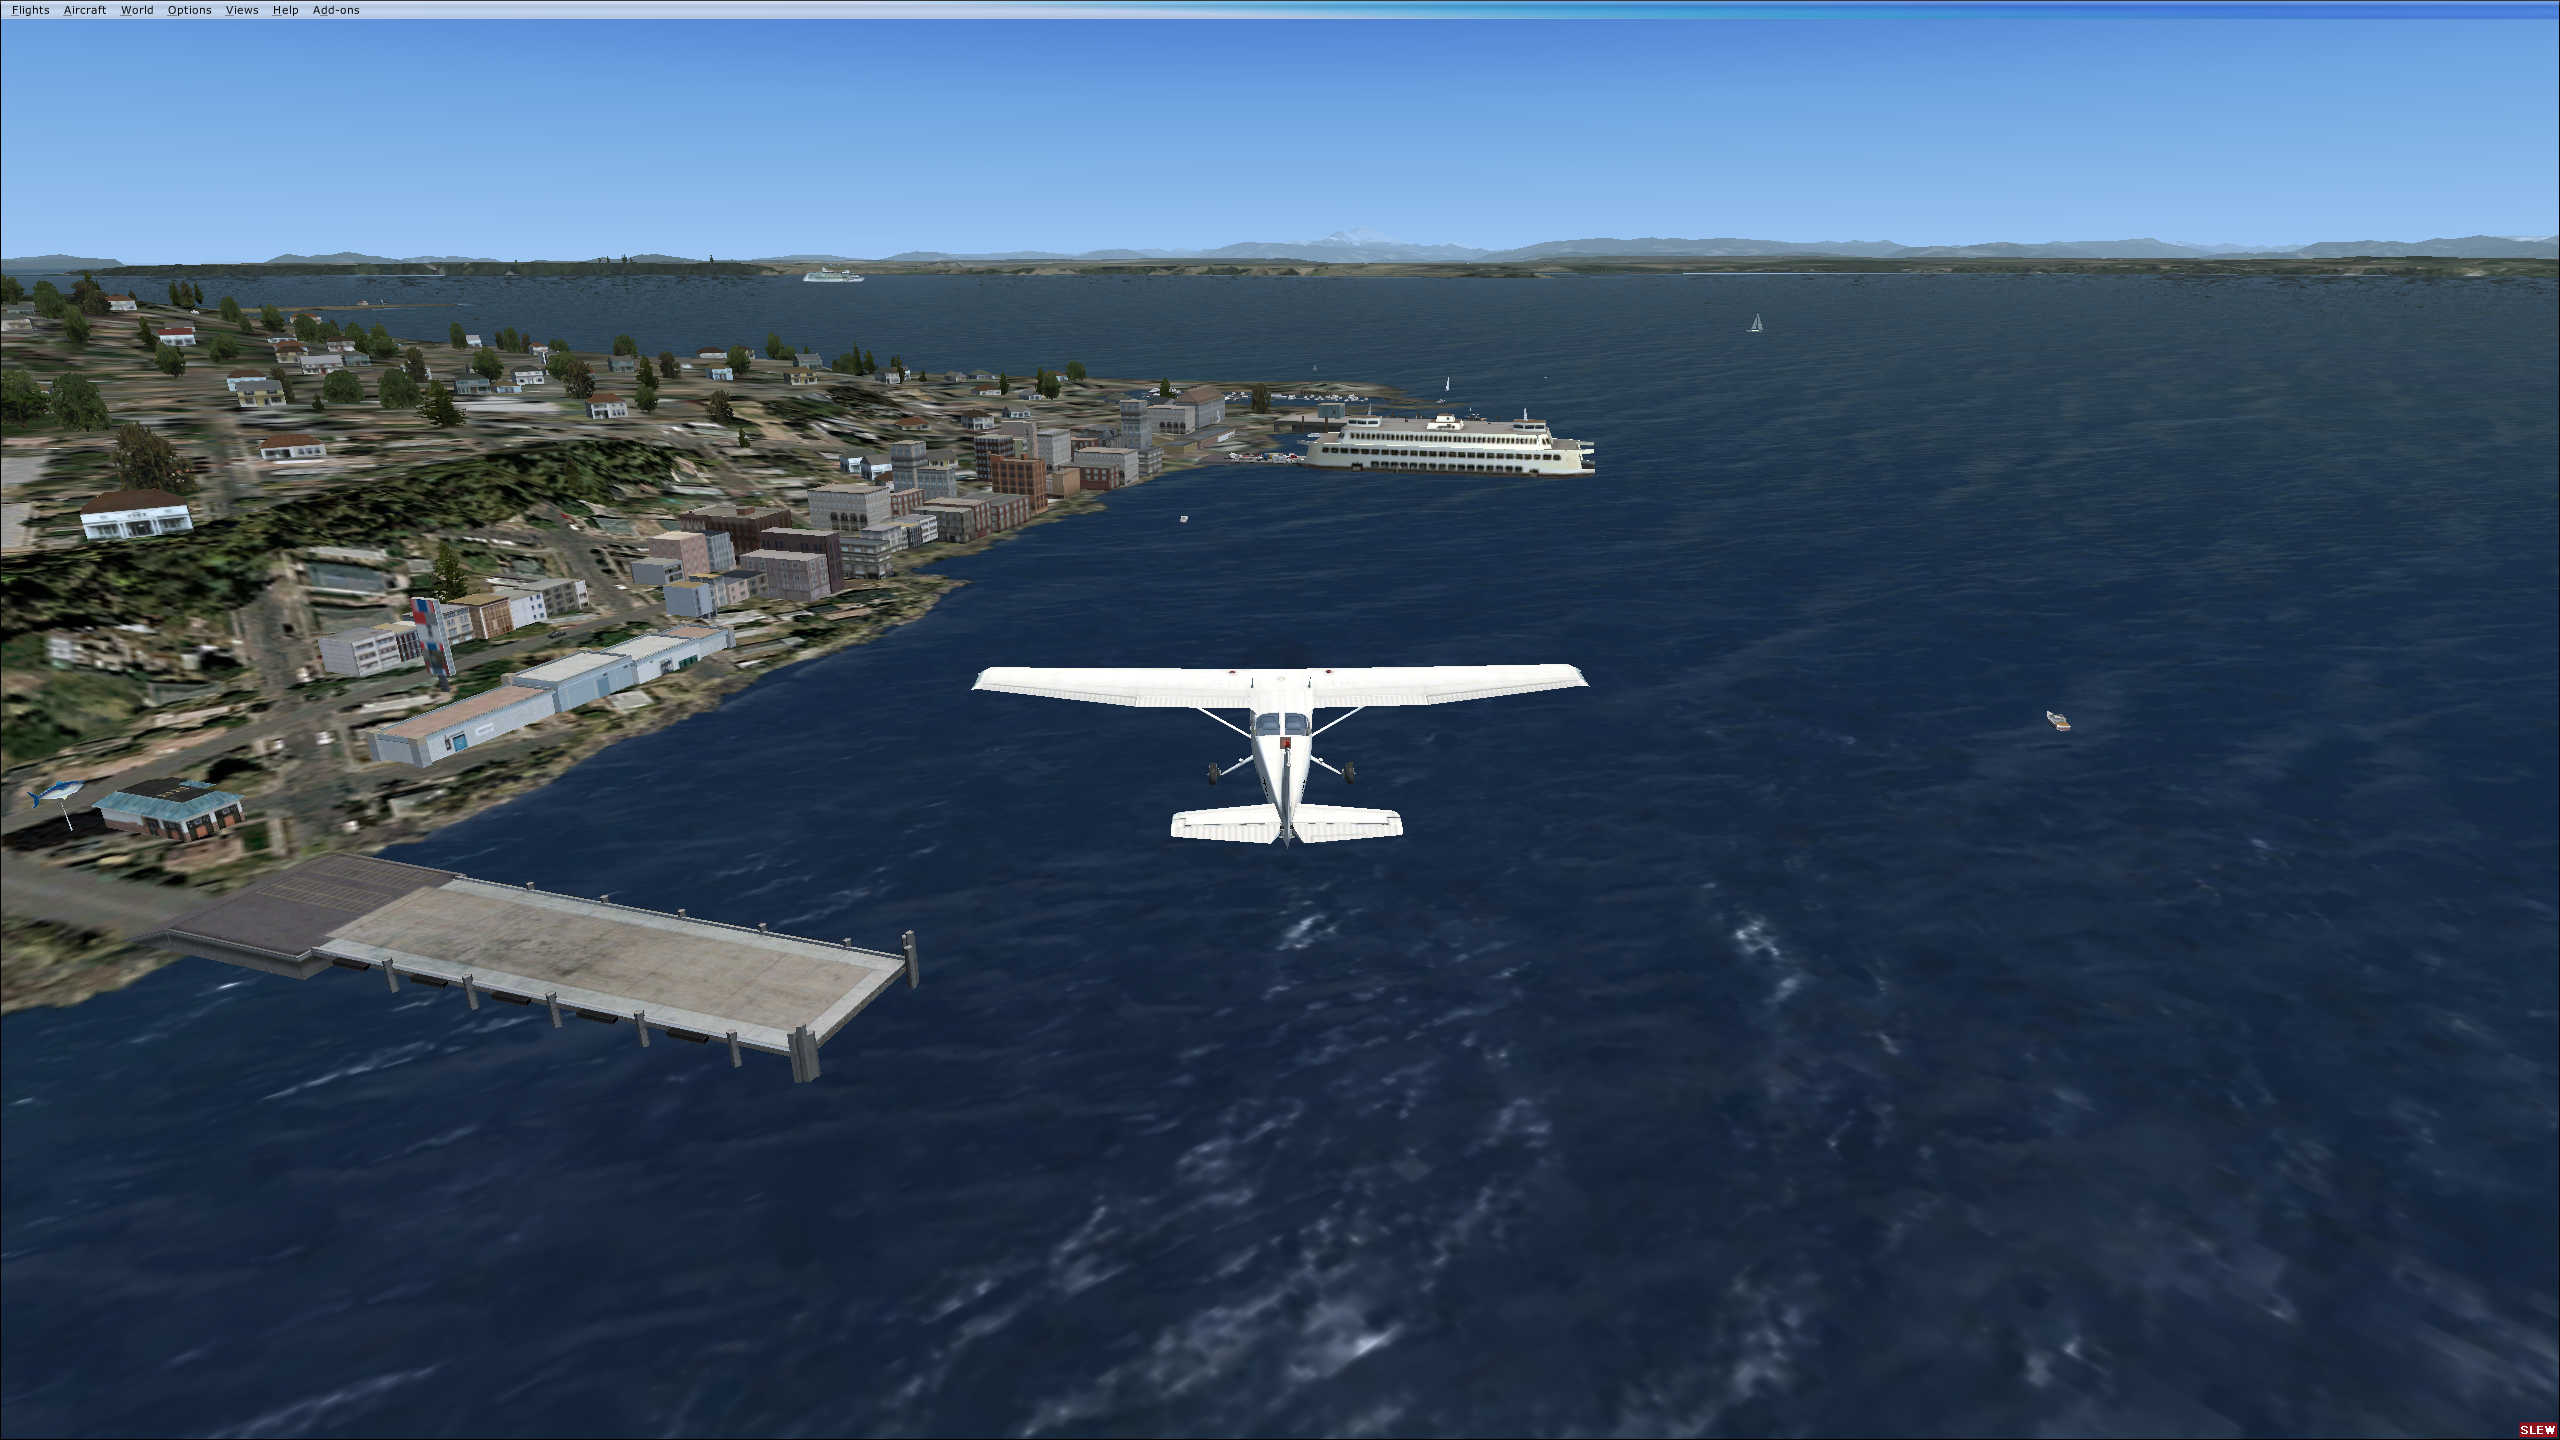 fs-freeware net - FSX 0S9_Addon for Orbix 0S9 and PNW scenery